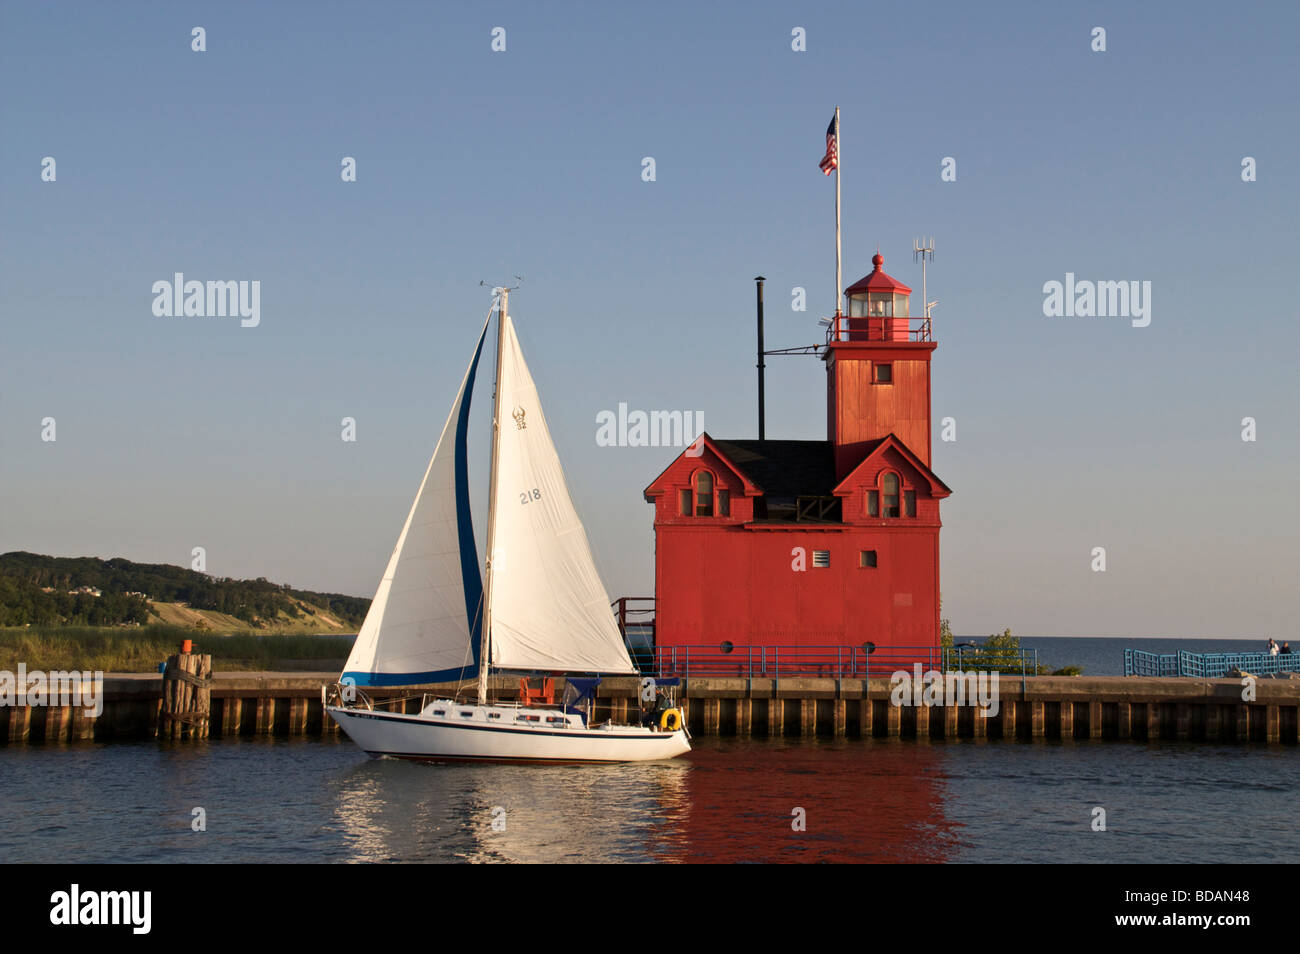 Sailboat entering harbor channel Holland State Park Michigan passing Big Red the entry lighthouse - Stock Image